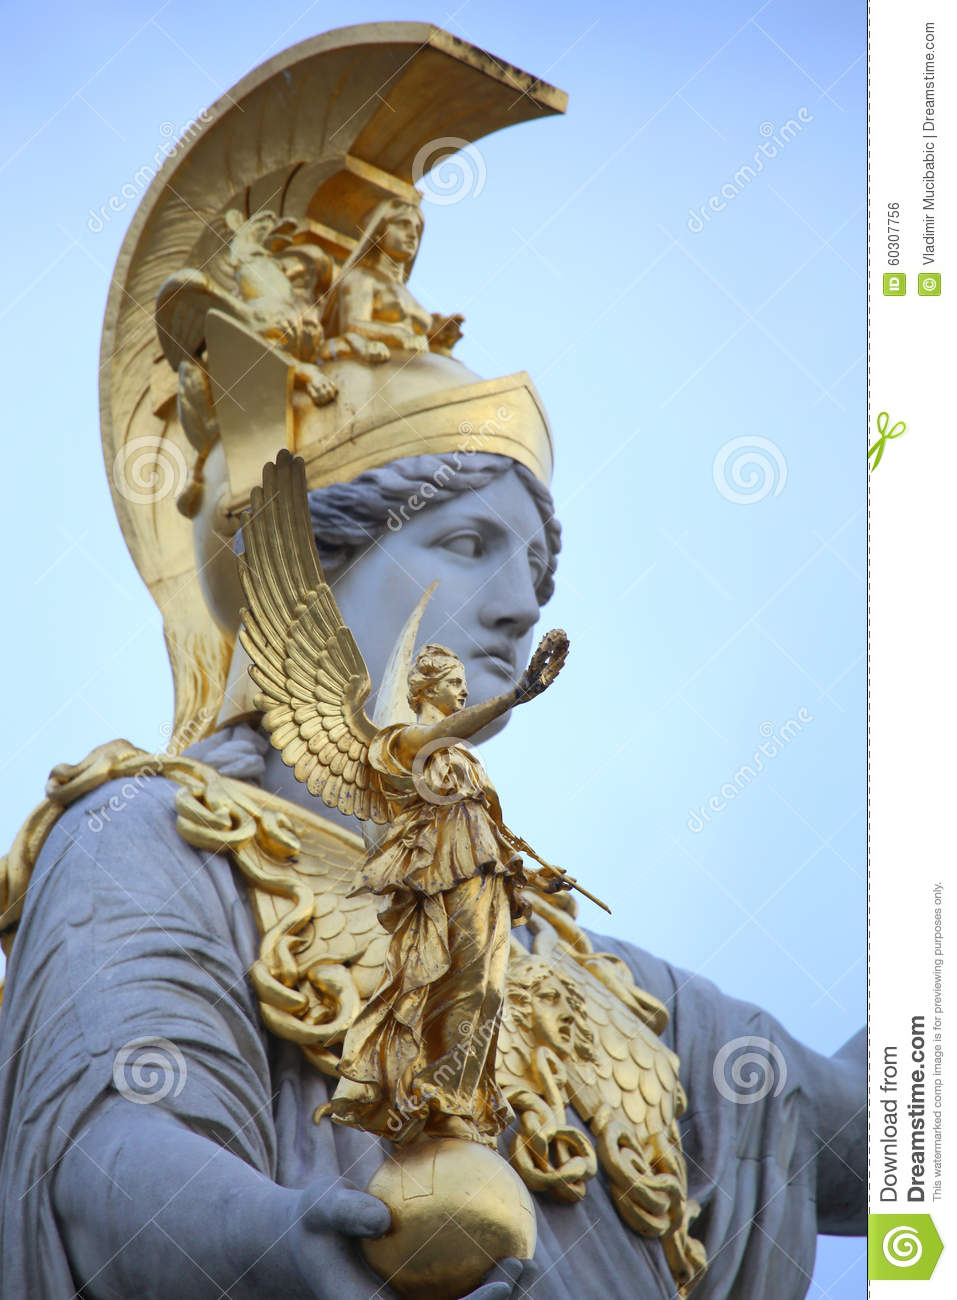 Statue Of Pallas Athena In Vienna, Austria Stock Photo